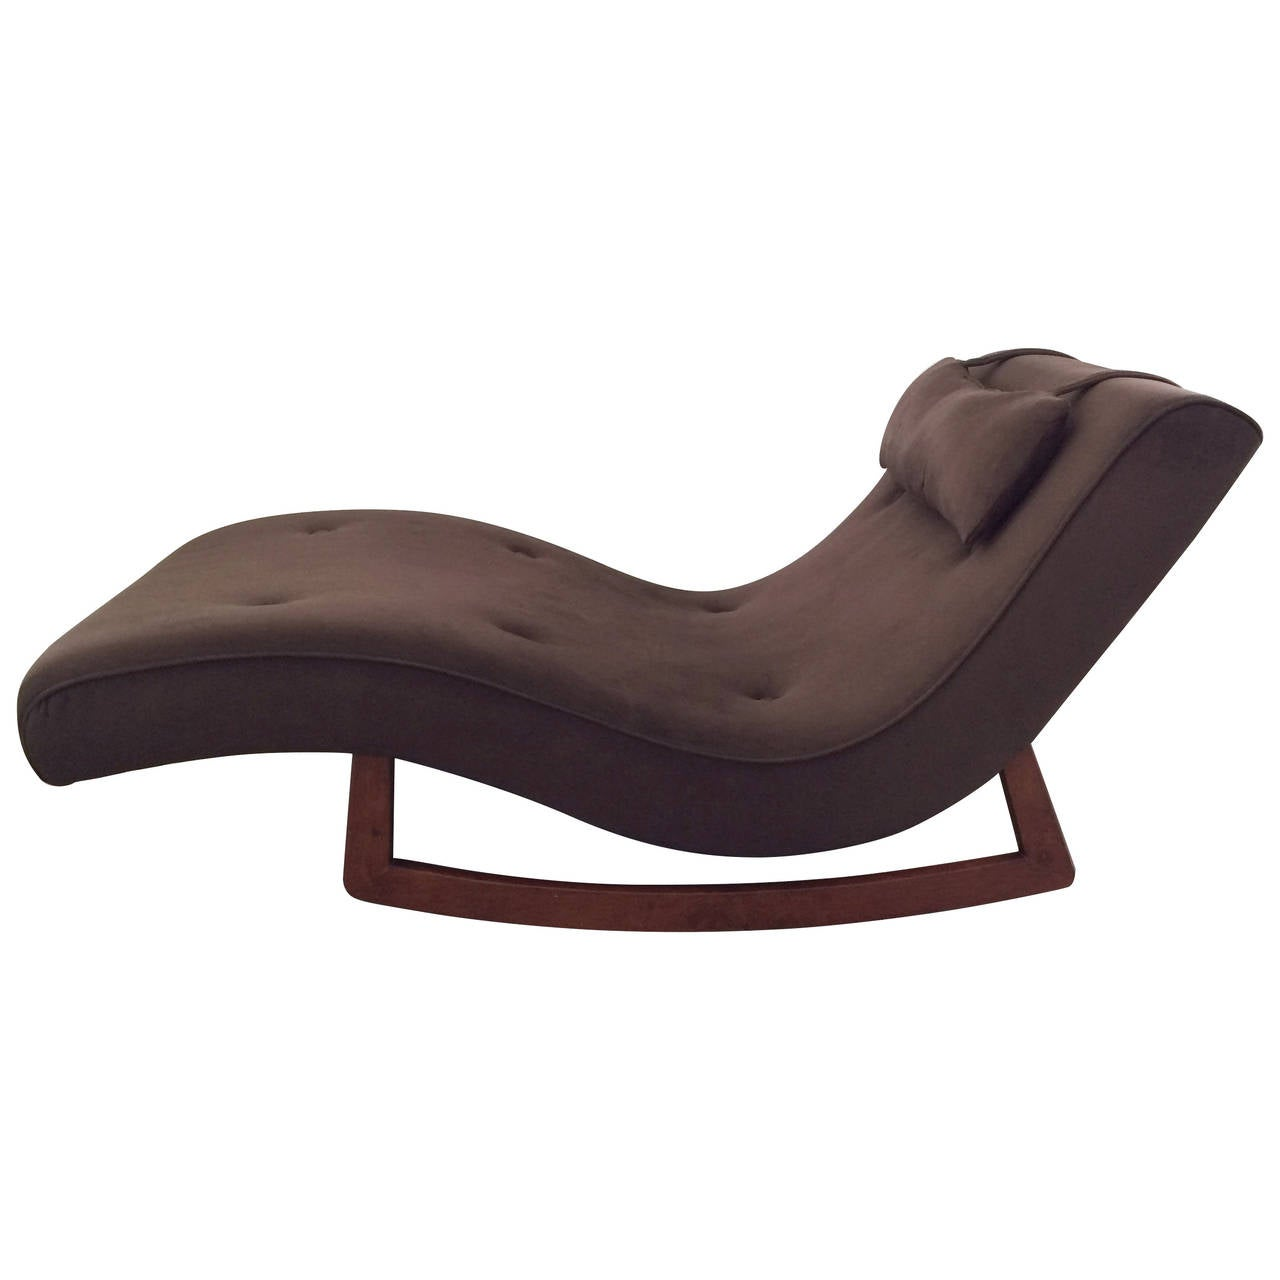 adrian pearsall rocking chair fisher price learning wave chaise lounge for craft